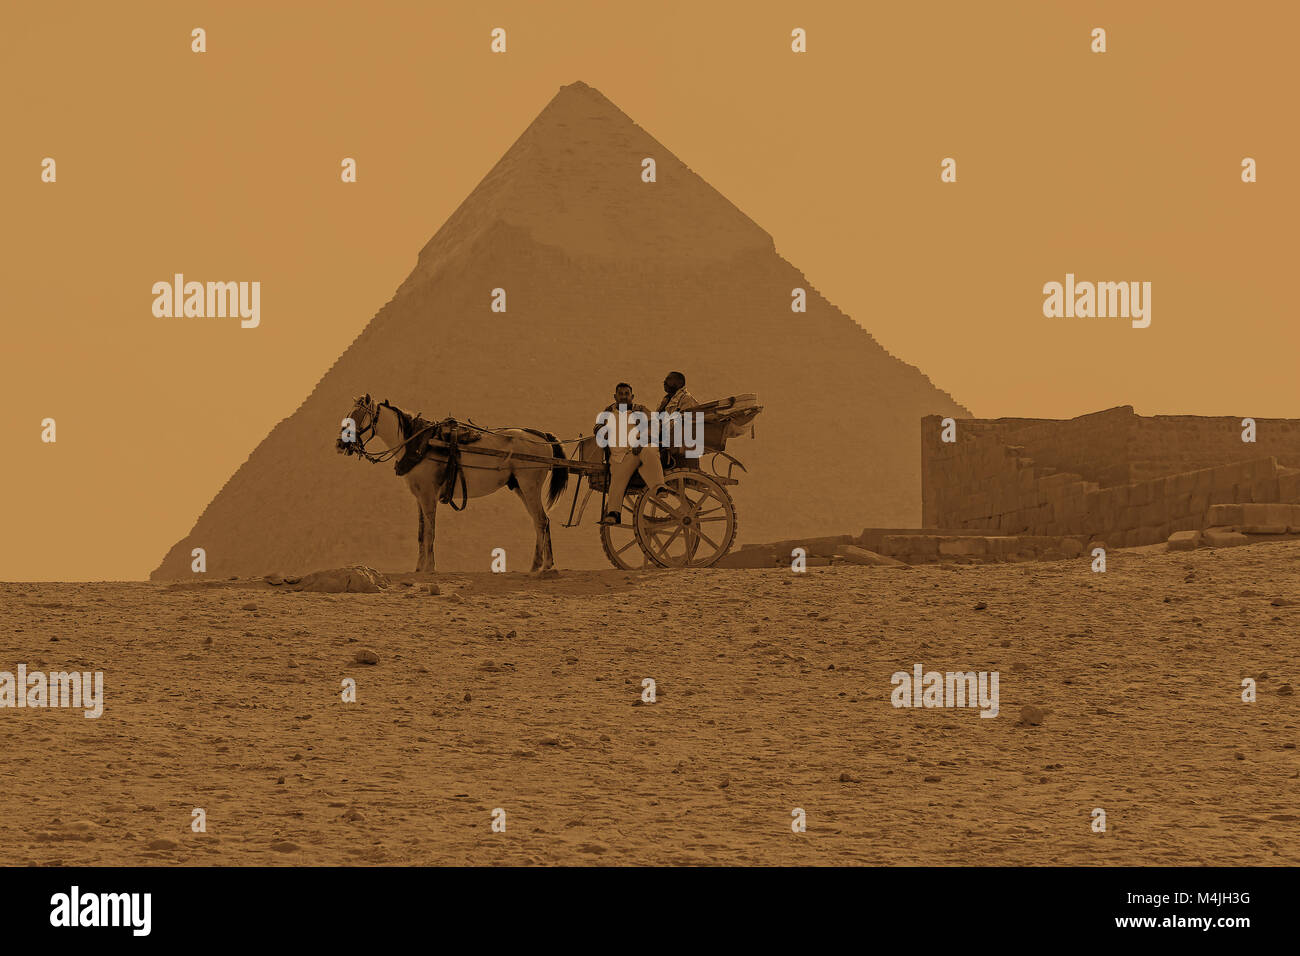 A horse and cart in front of the Pyramids, Giza, Egypt, North Africa sepia toned - Stock Image